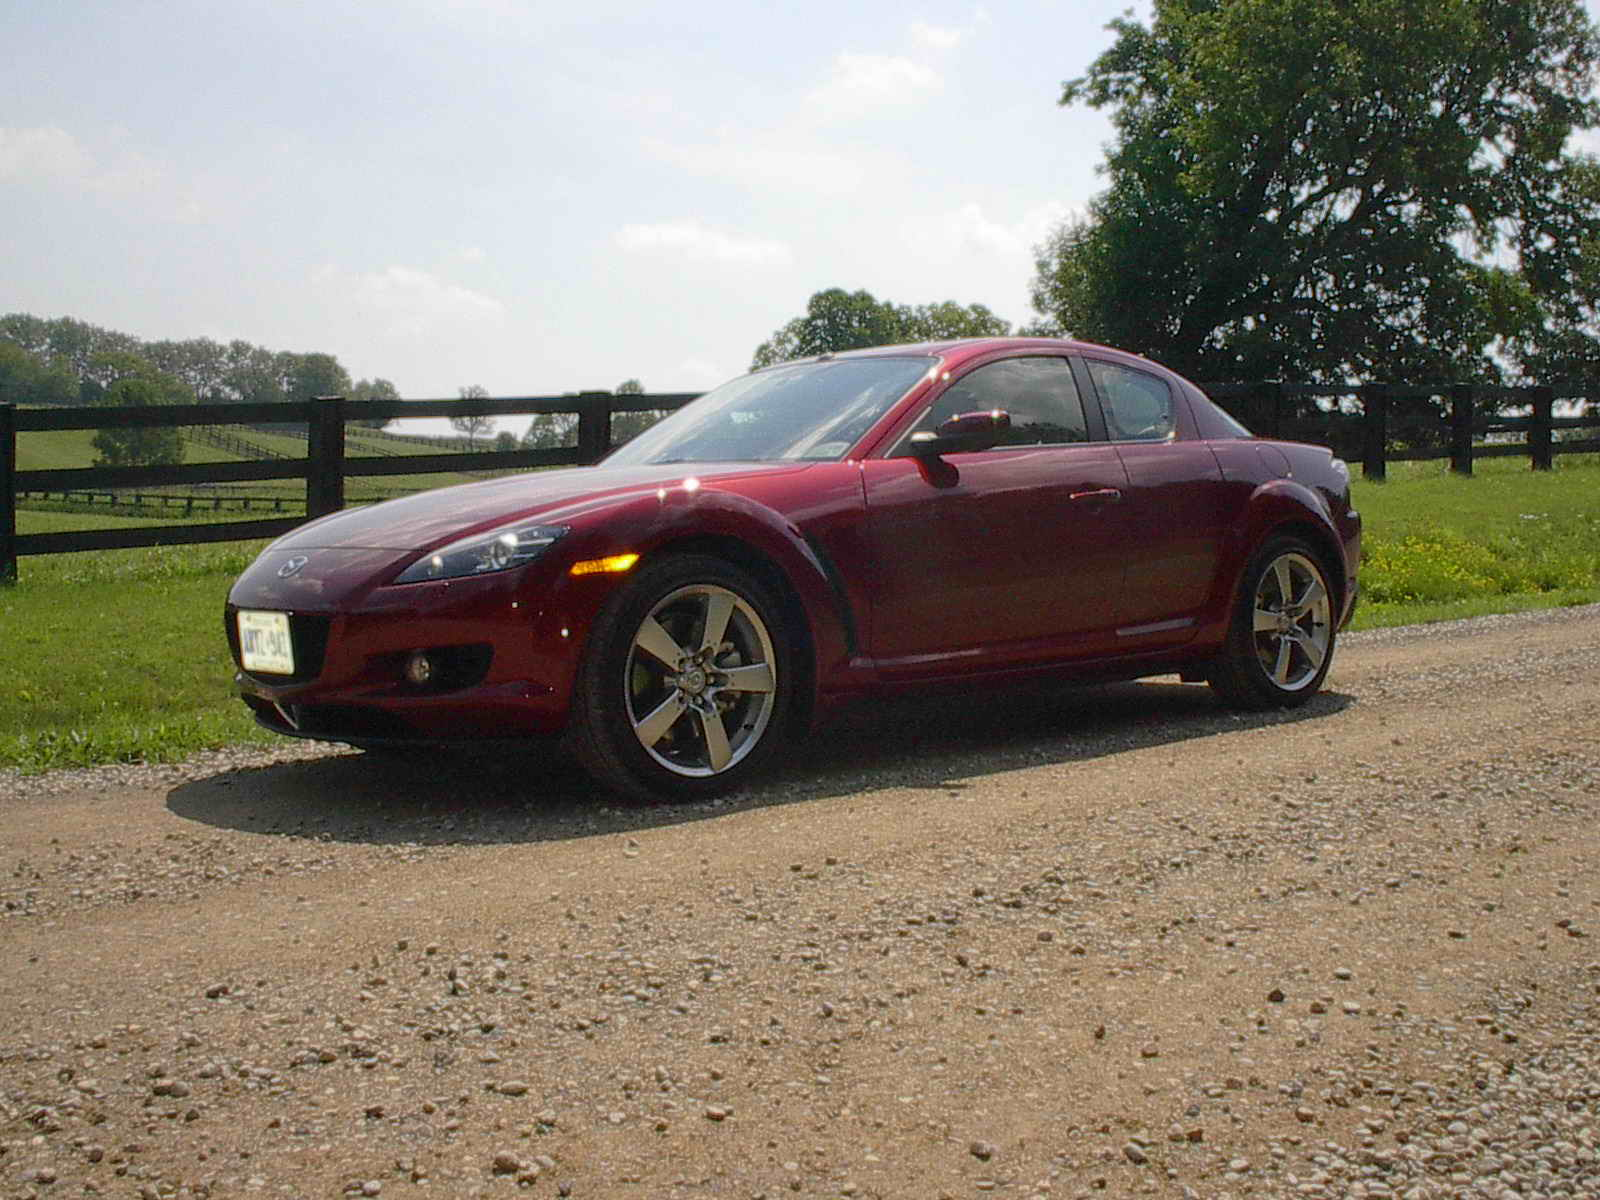 2006 Mazda RX-8 | Top Speed